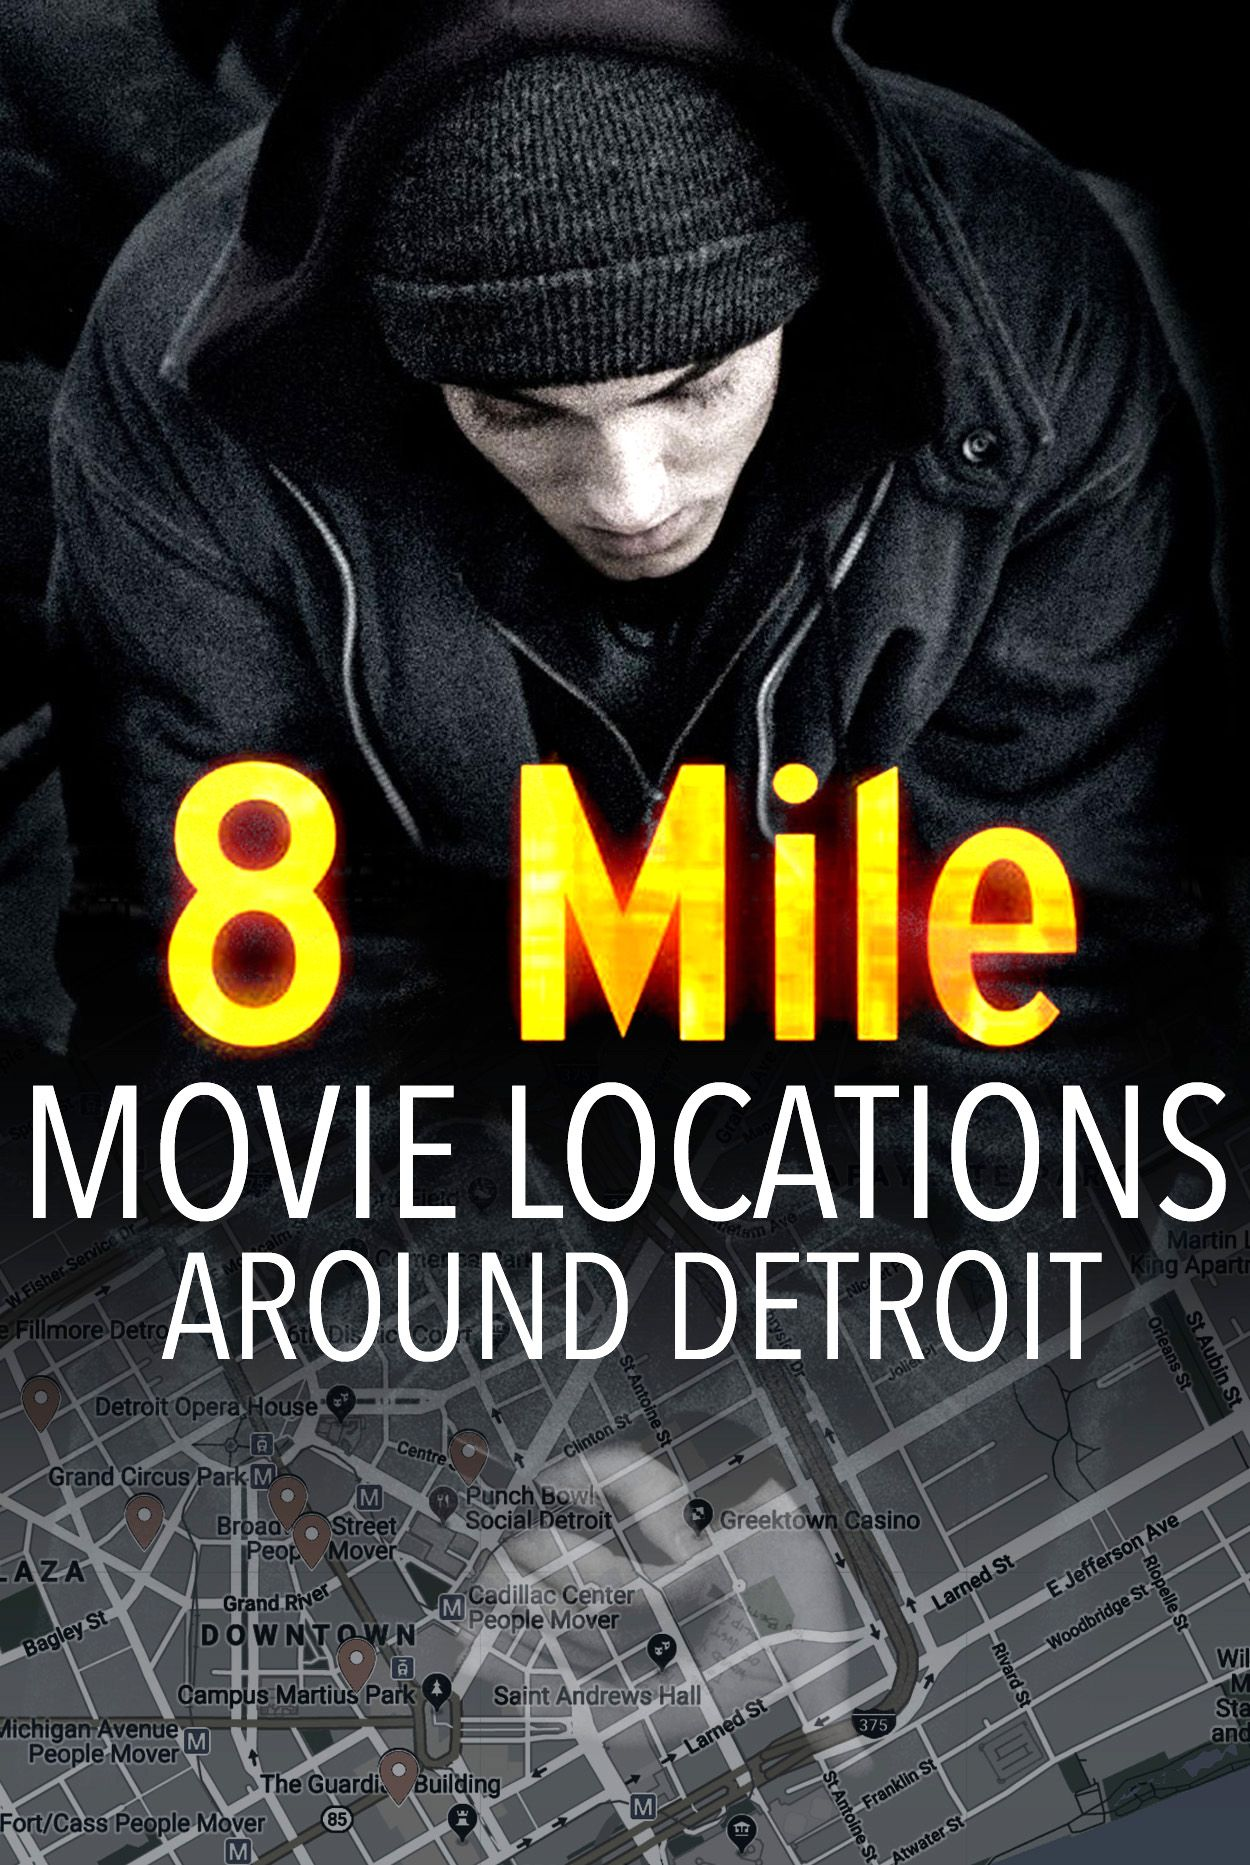 Film Locations For Curtis Hanson S 8 Mile 2002 With Eminem Around Detroit 8mile Movielocations Trailerp Filming Locations Movie Locations Miles Movie